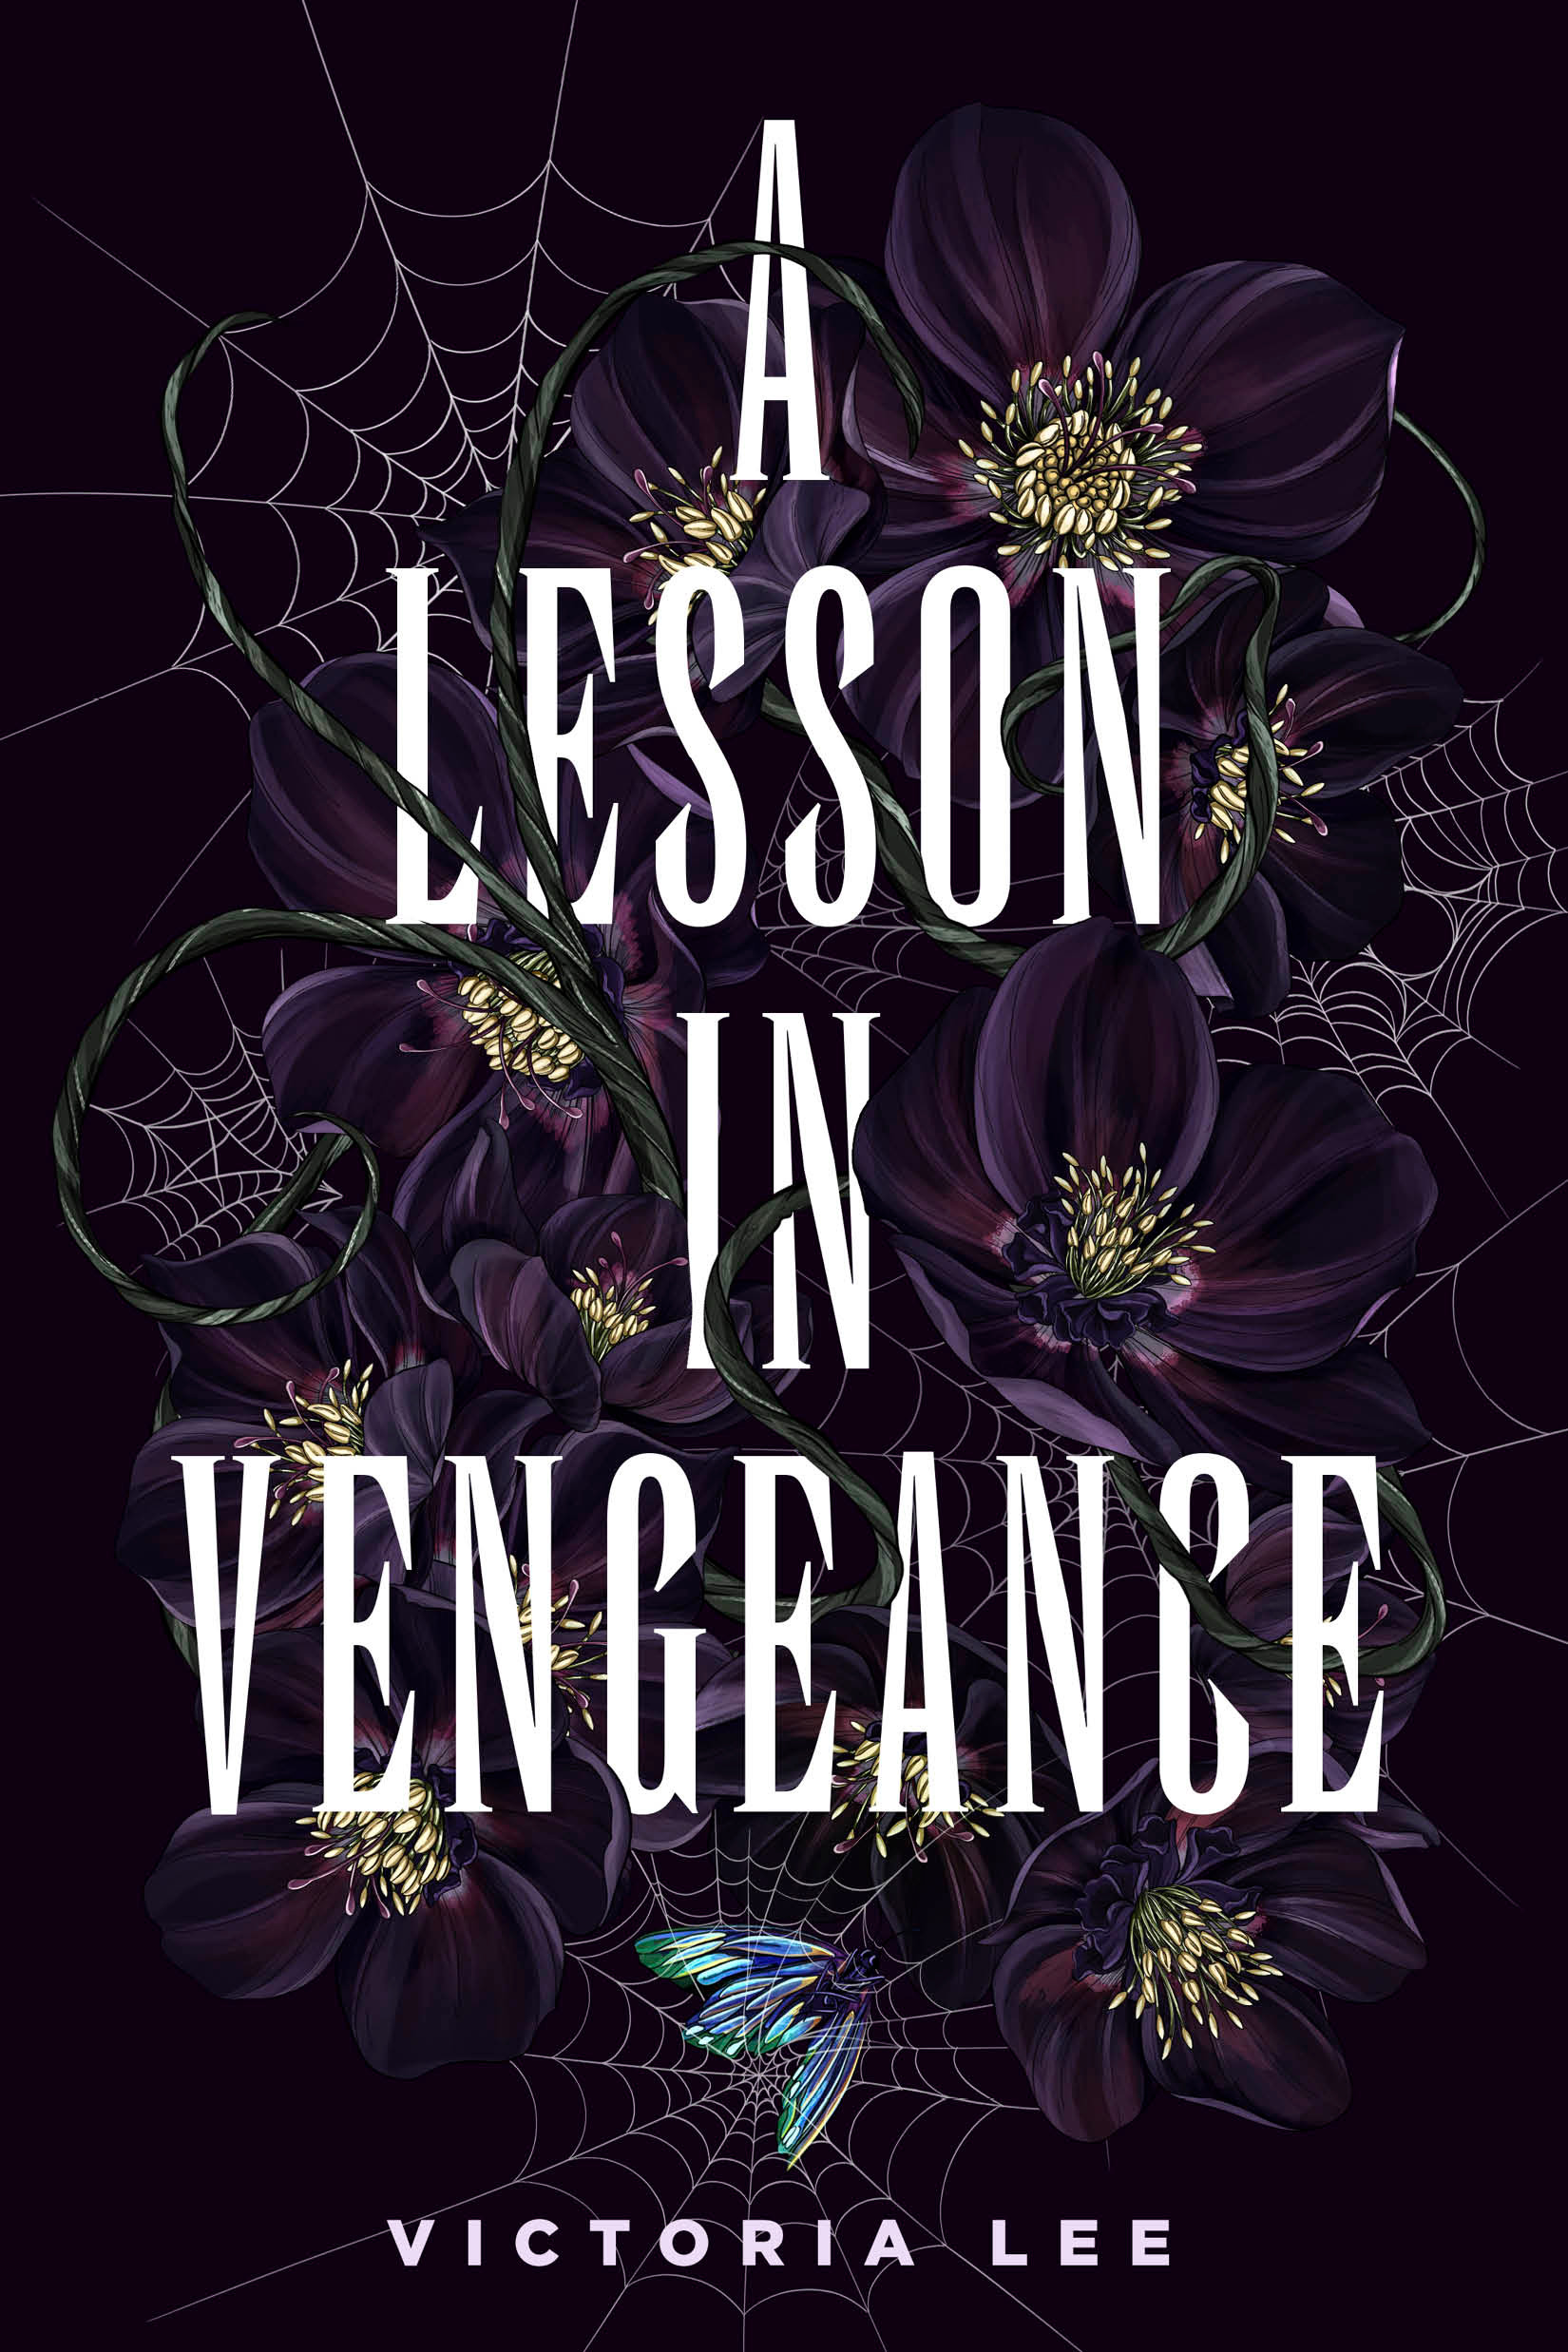 2021 book releases: A Lesson in Vengeance by Victoria Lee